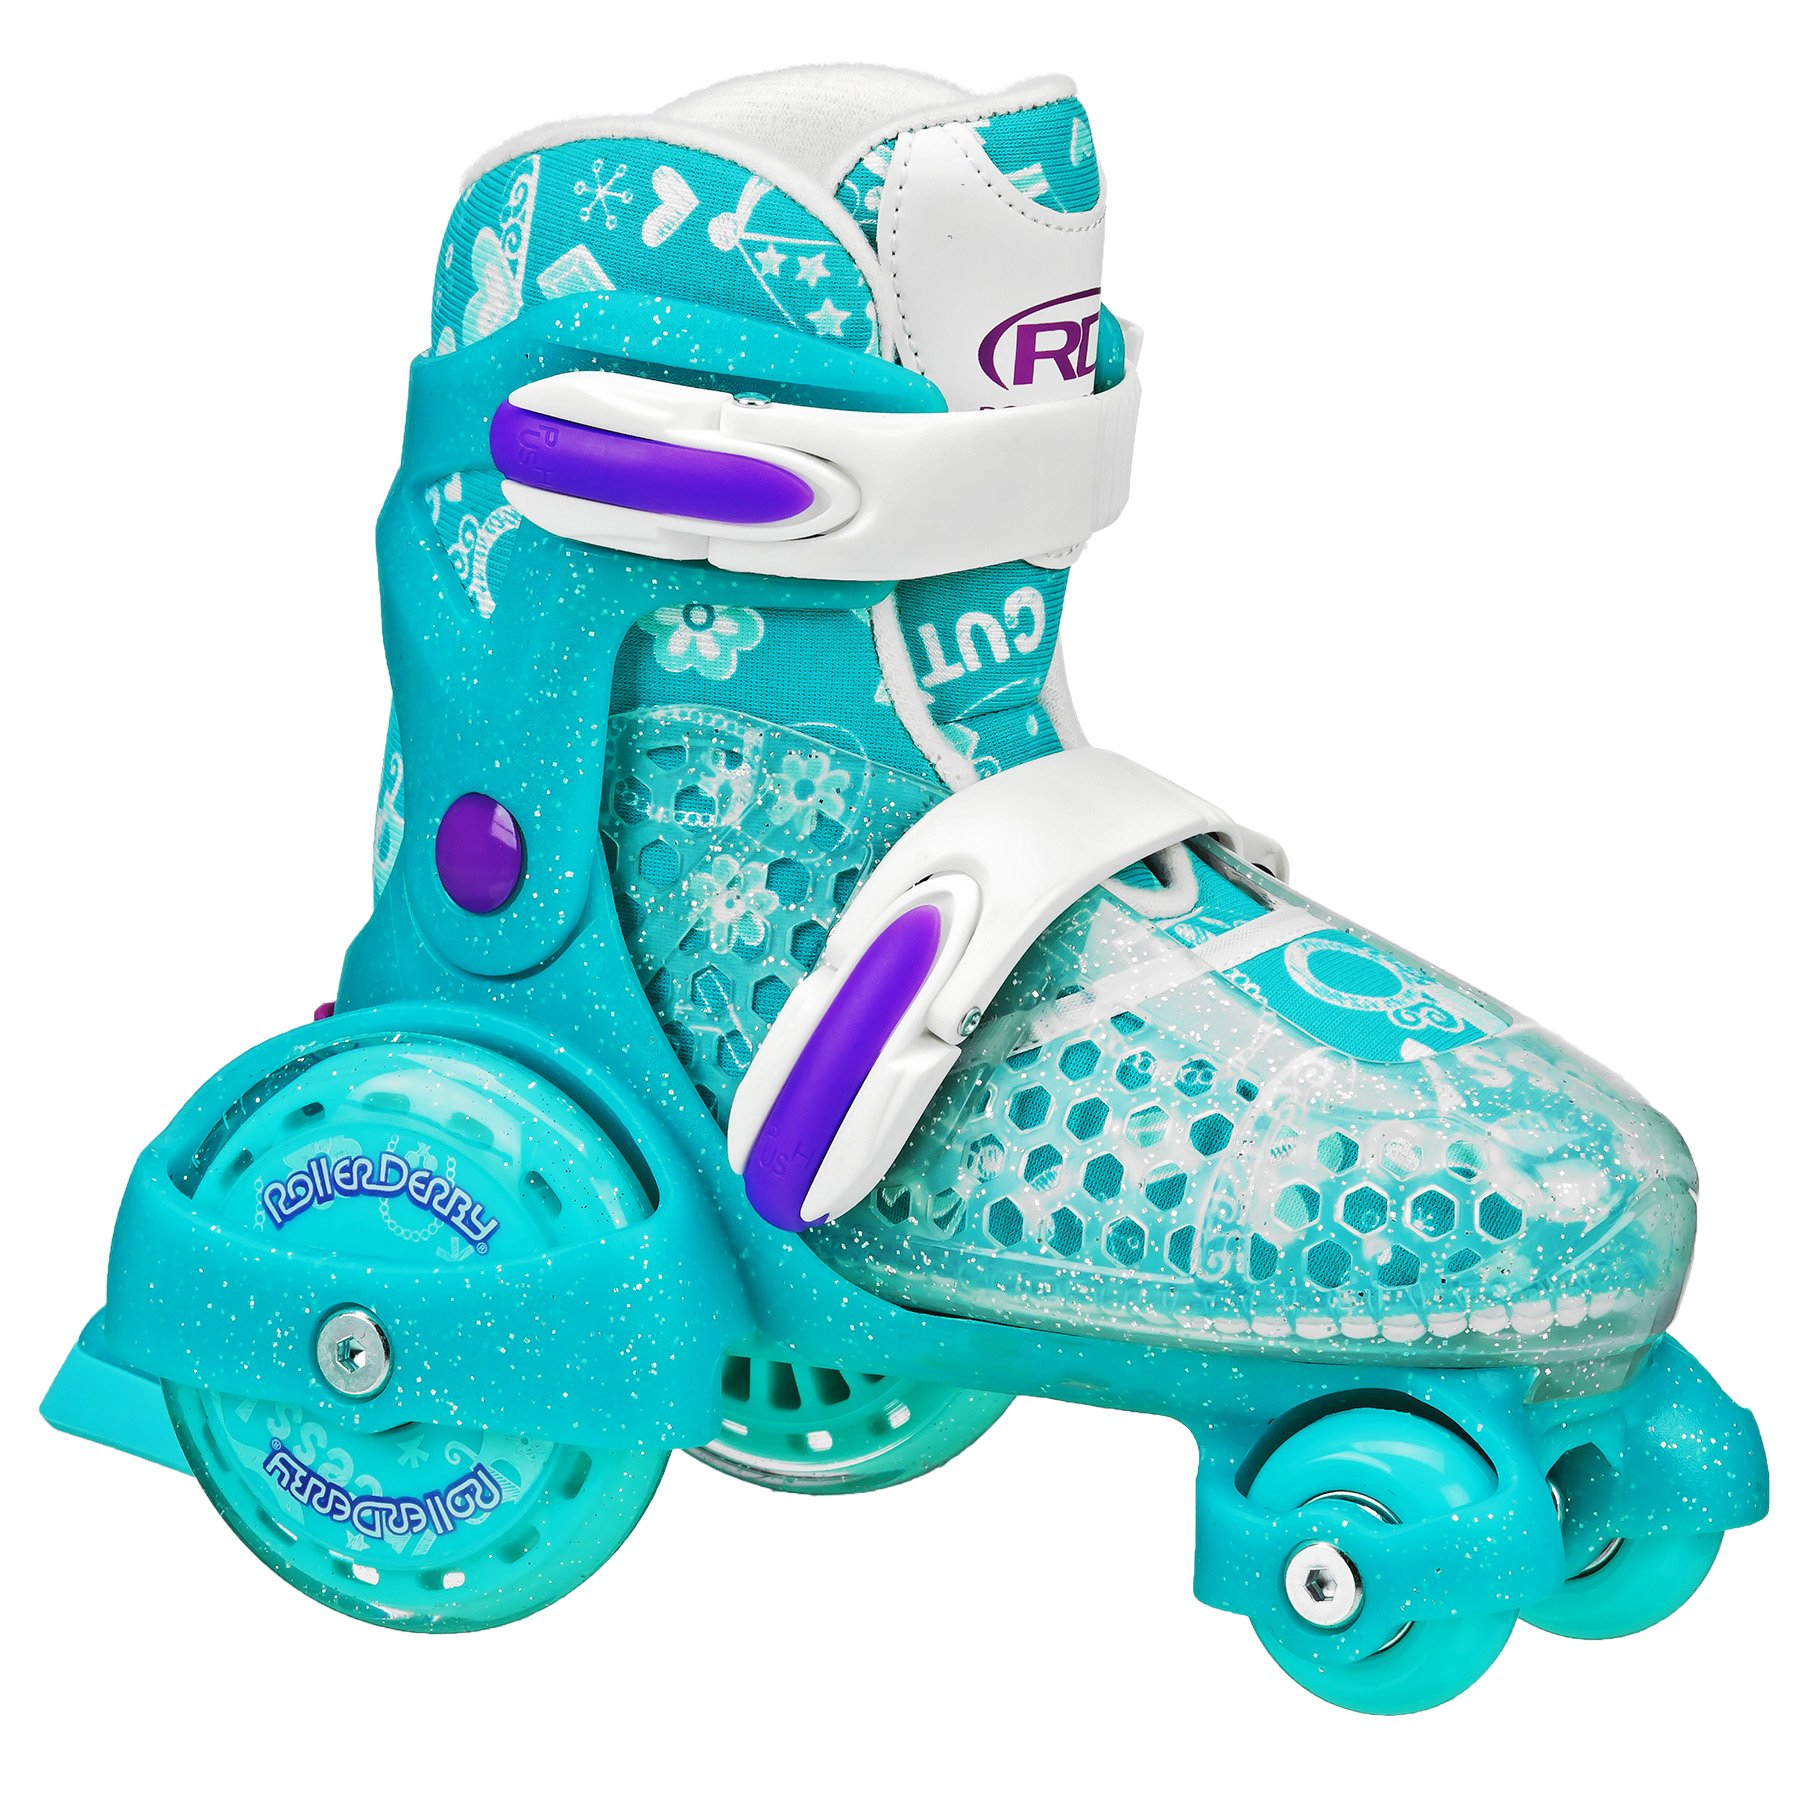 EZ Roll Quad Skates 11-2 by Roller Derby